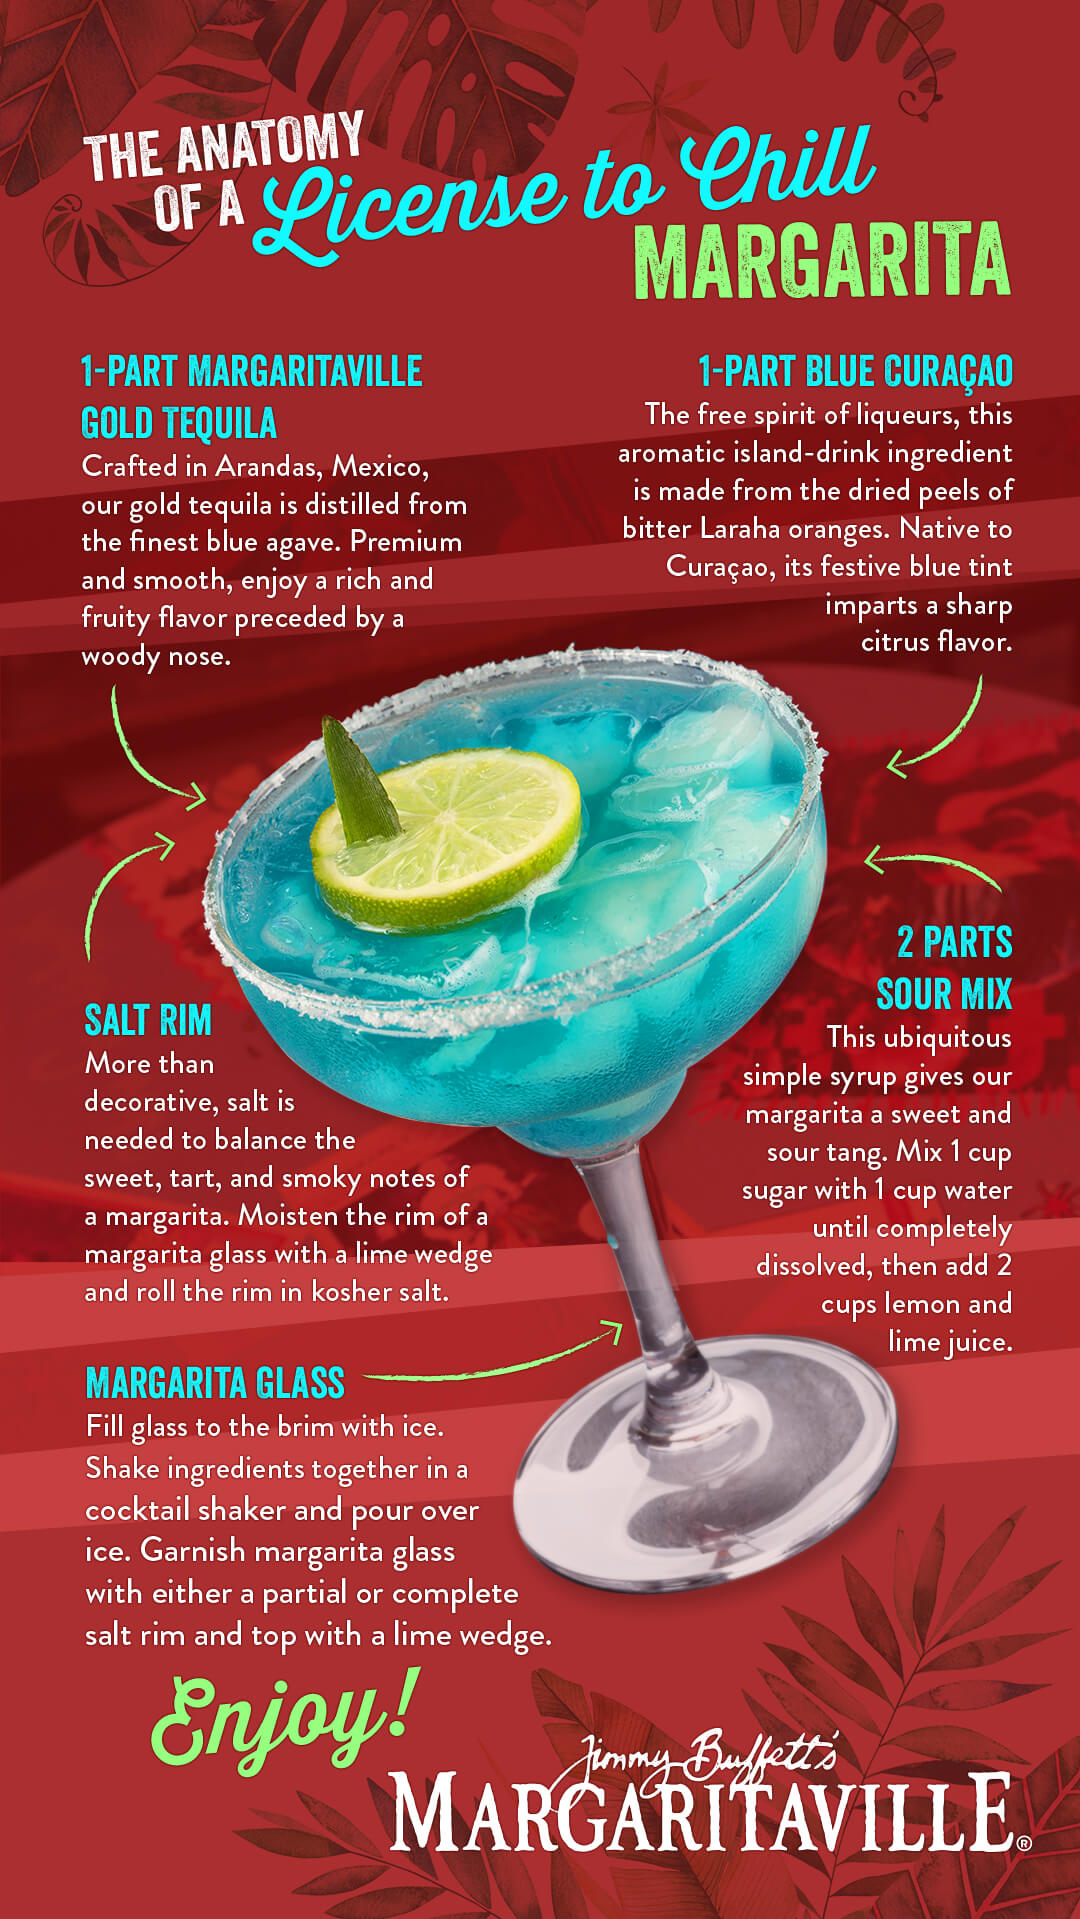 The Anatomy of a License to Chill Margarita from Margaritaville Caribbean